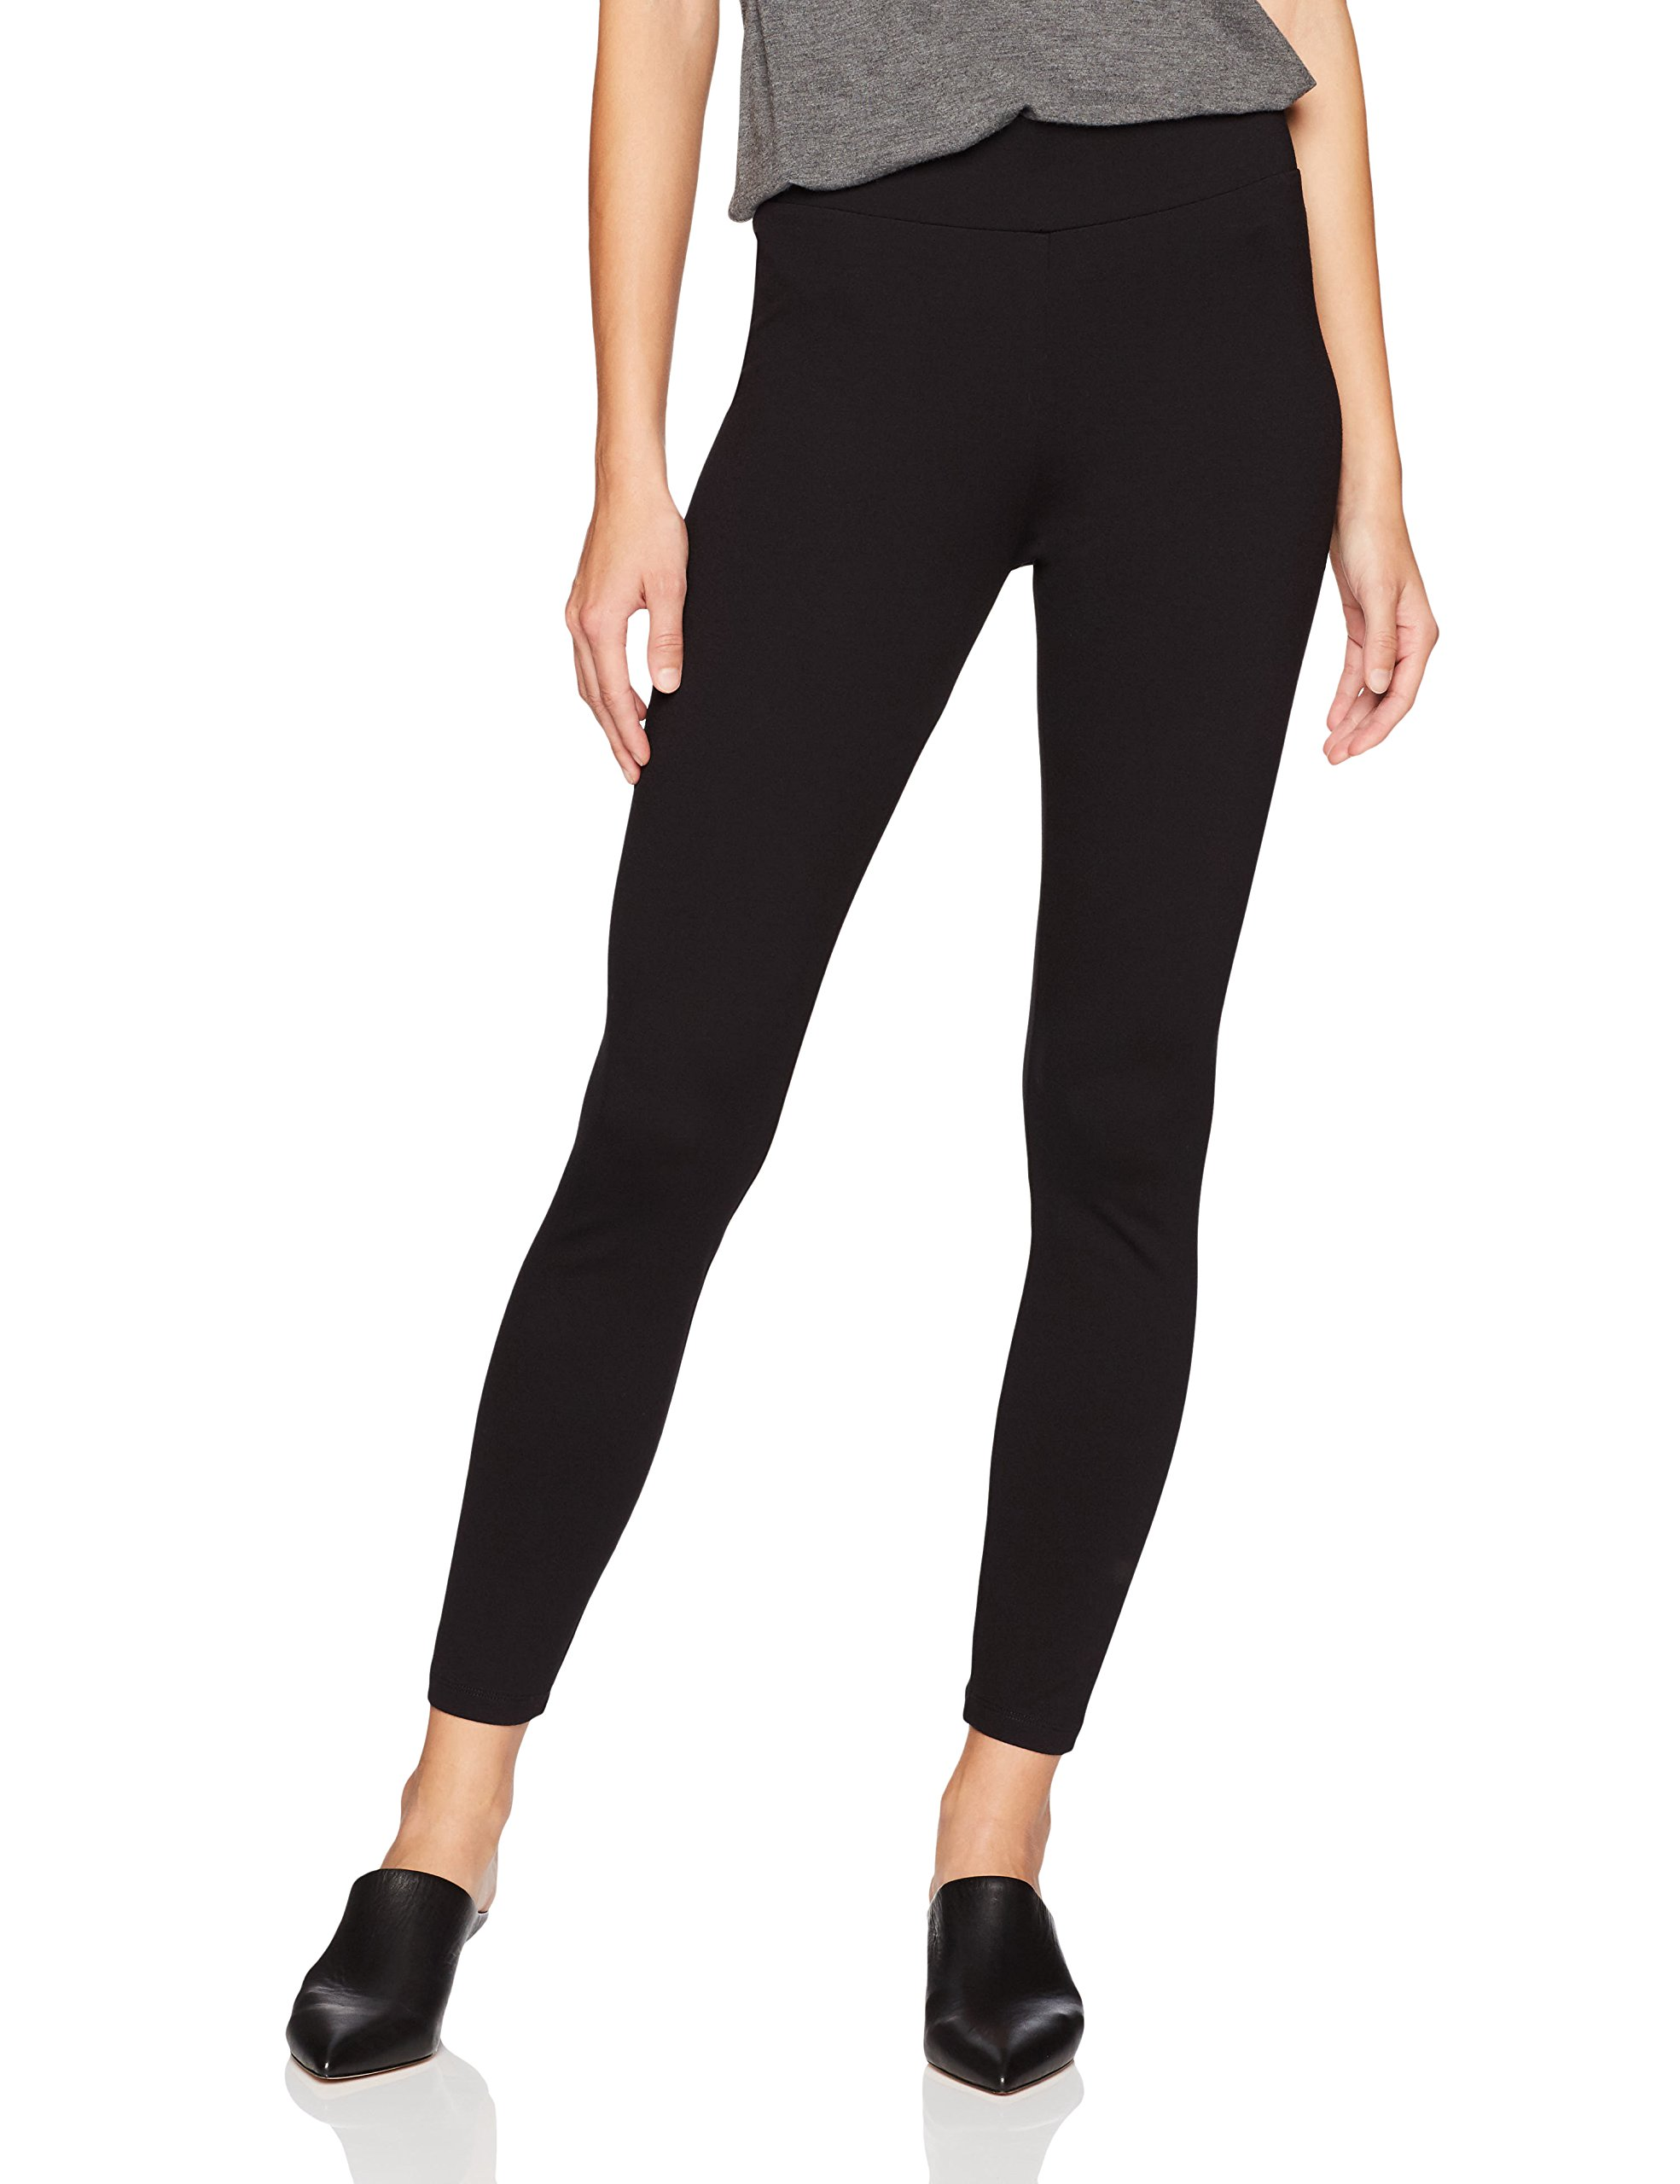 Daily Ritual Women's Ponte Knit Legging, Black, M, Short